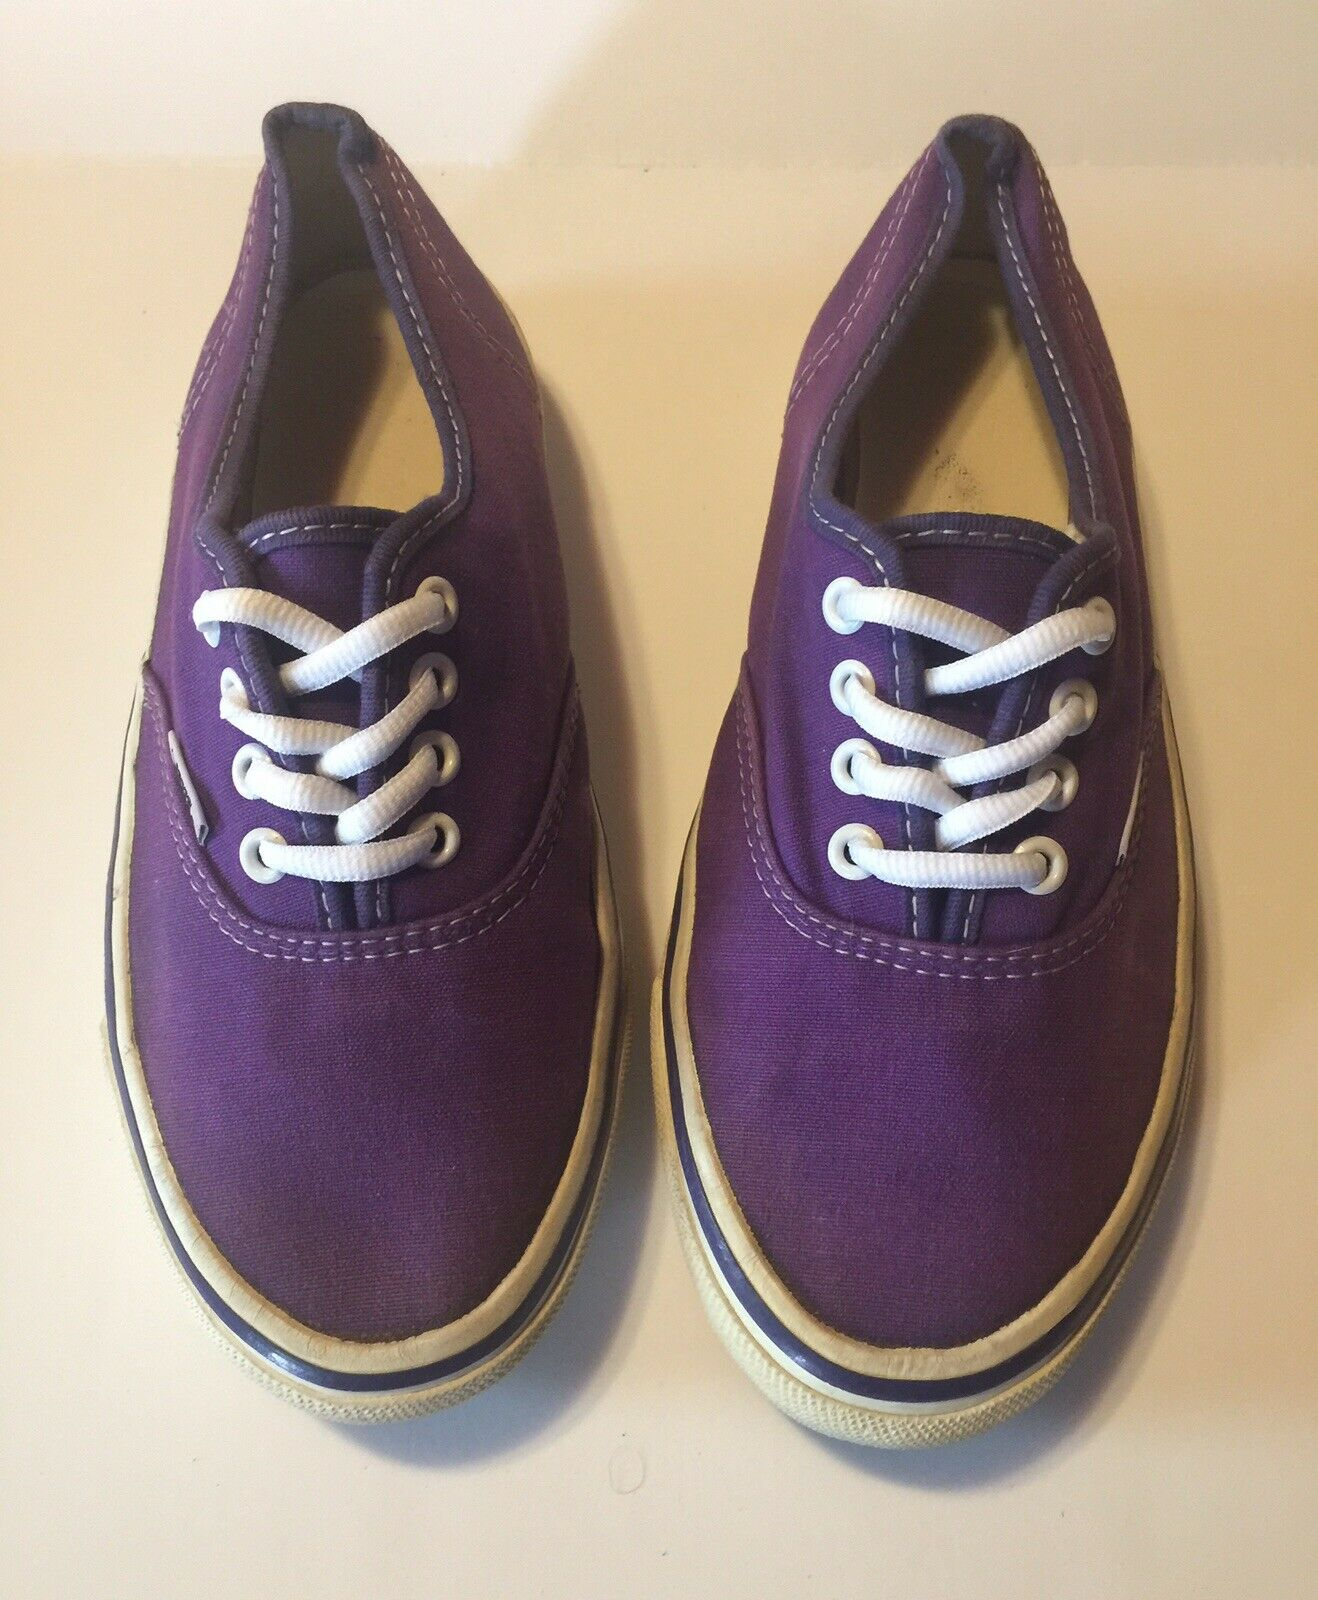 Vans Off The Wall Purple Low Top Sneaker Women's Sz 8.5 Made In The USA Vintage